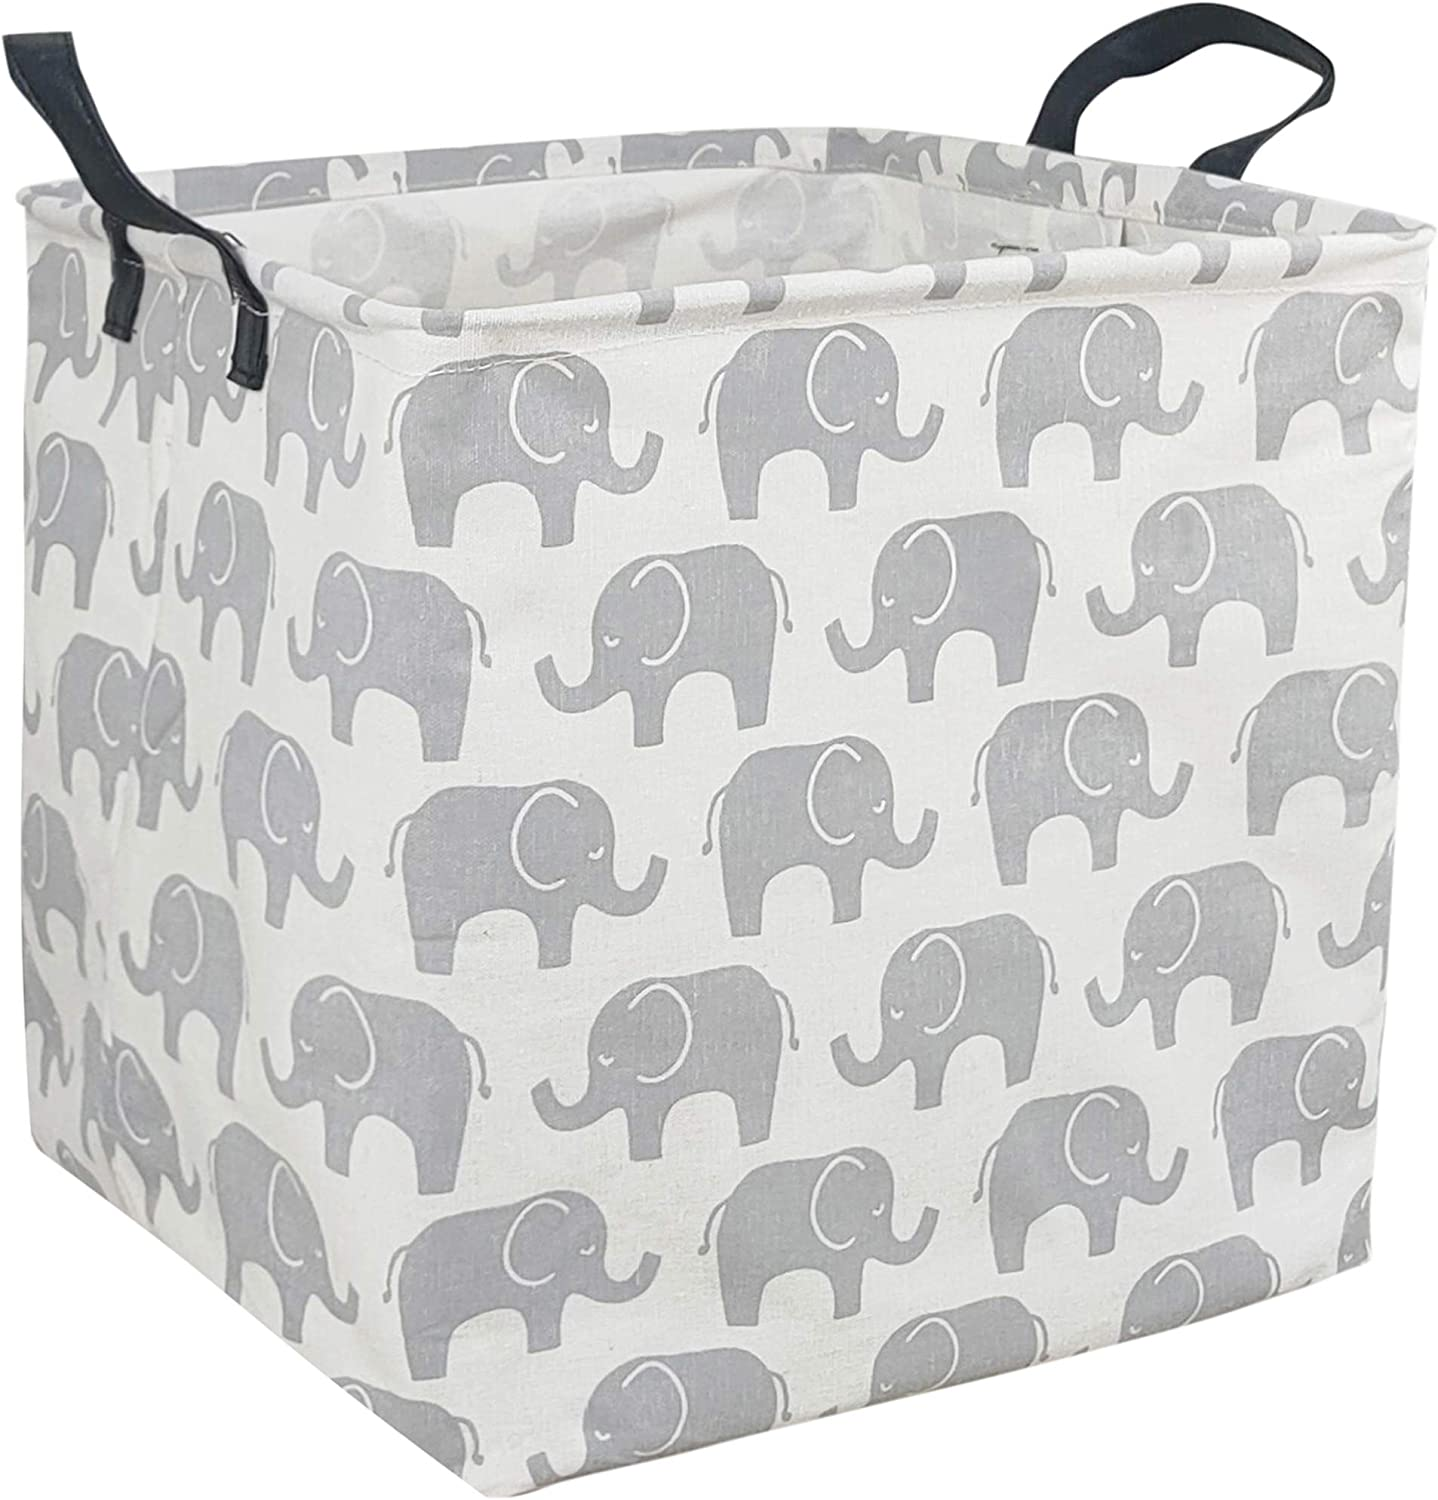 HUAYEE Square Storage Bin Canvas Fabric Storage Basket, Waterproof Coating Toy Organizer with Handles, Gift Basket for Home, Office, Clothes, Toy, Shelf Basket (Square Elephant)